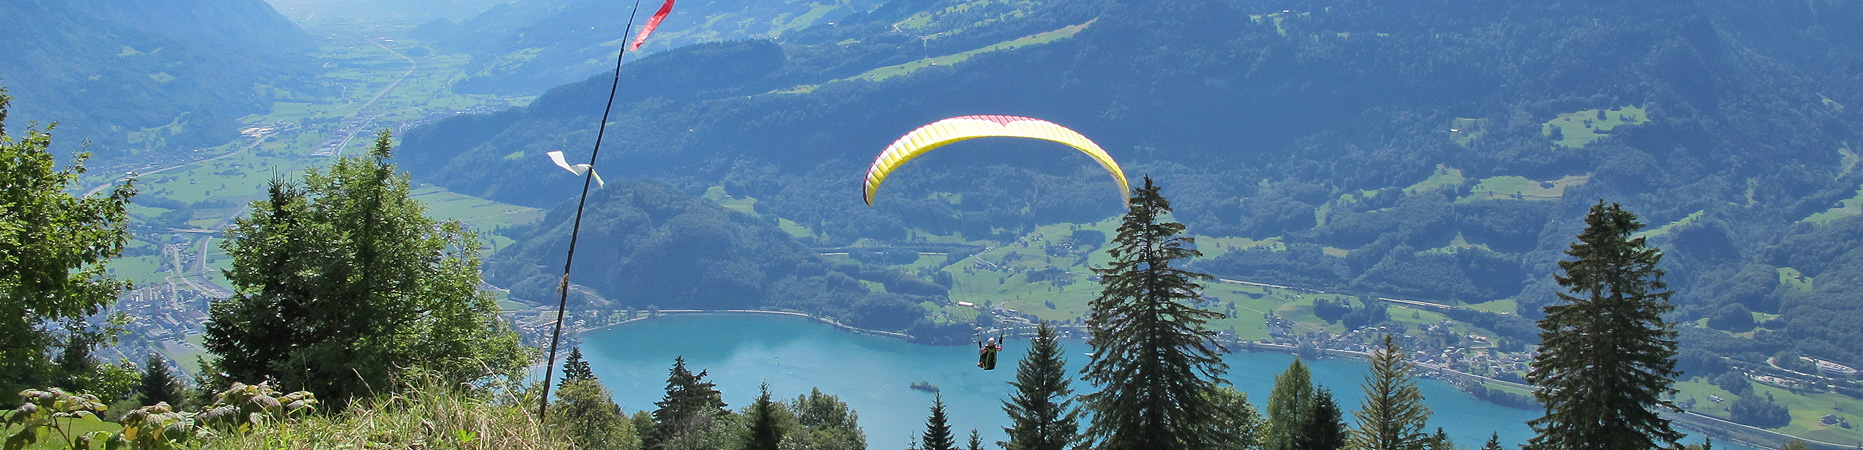 X-dream Fly Siku Walensee